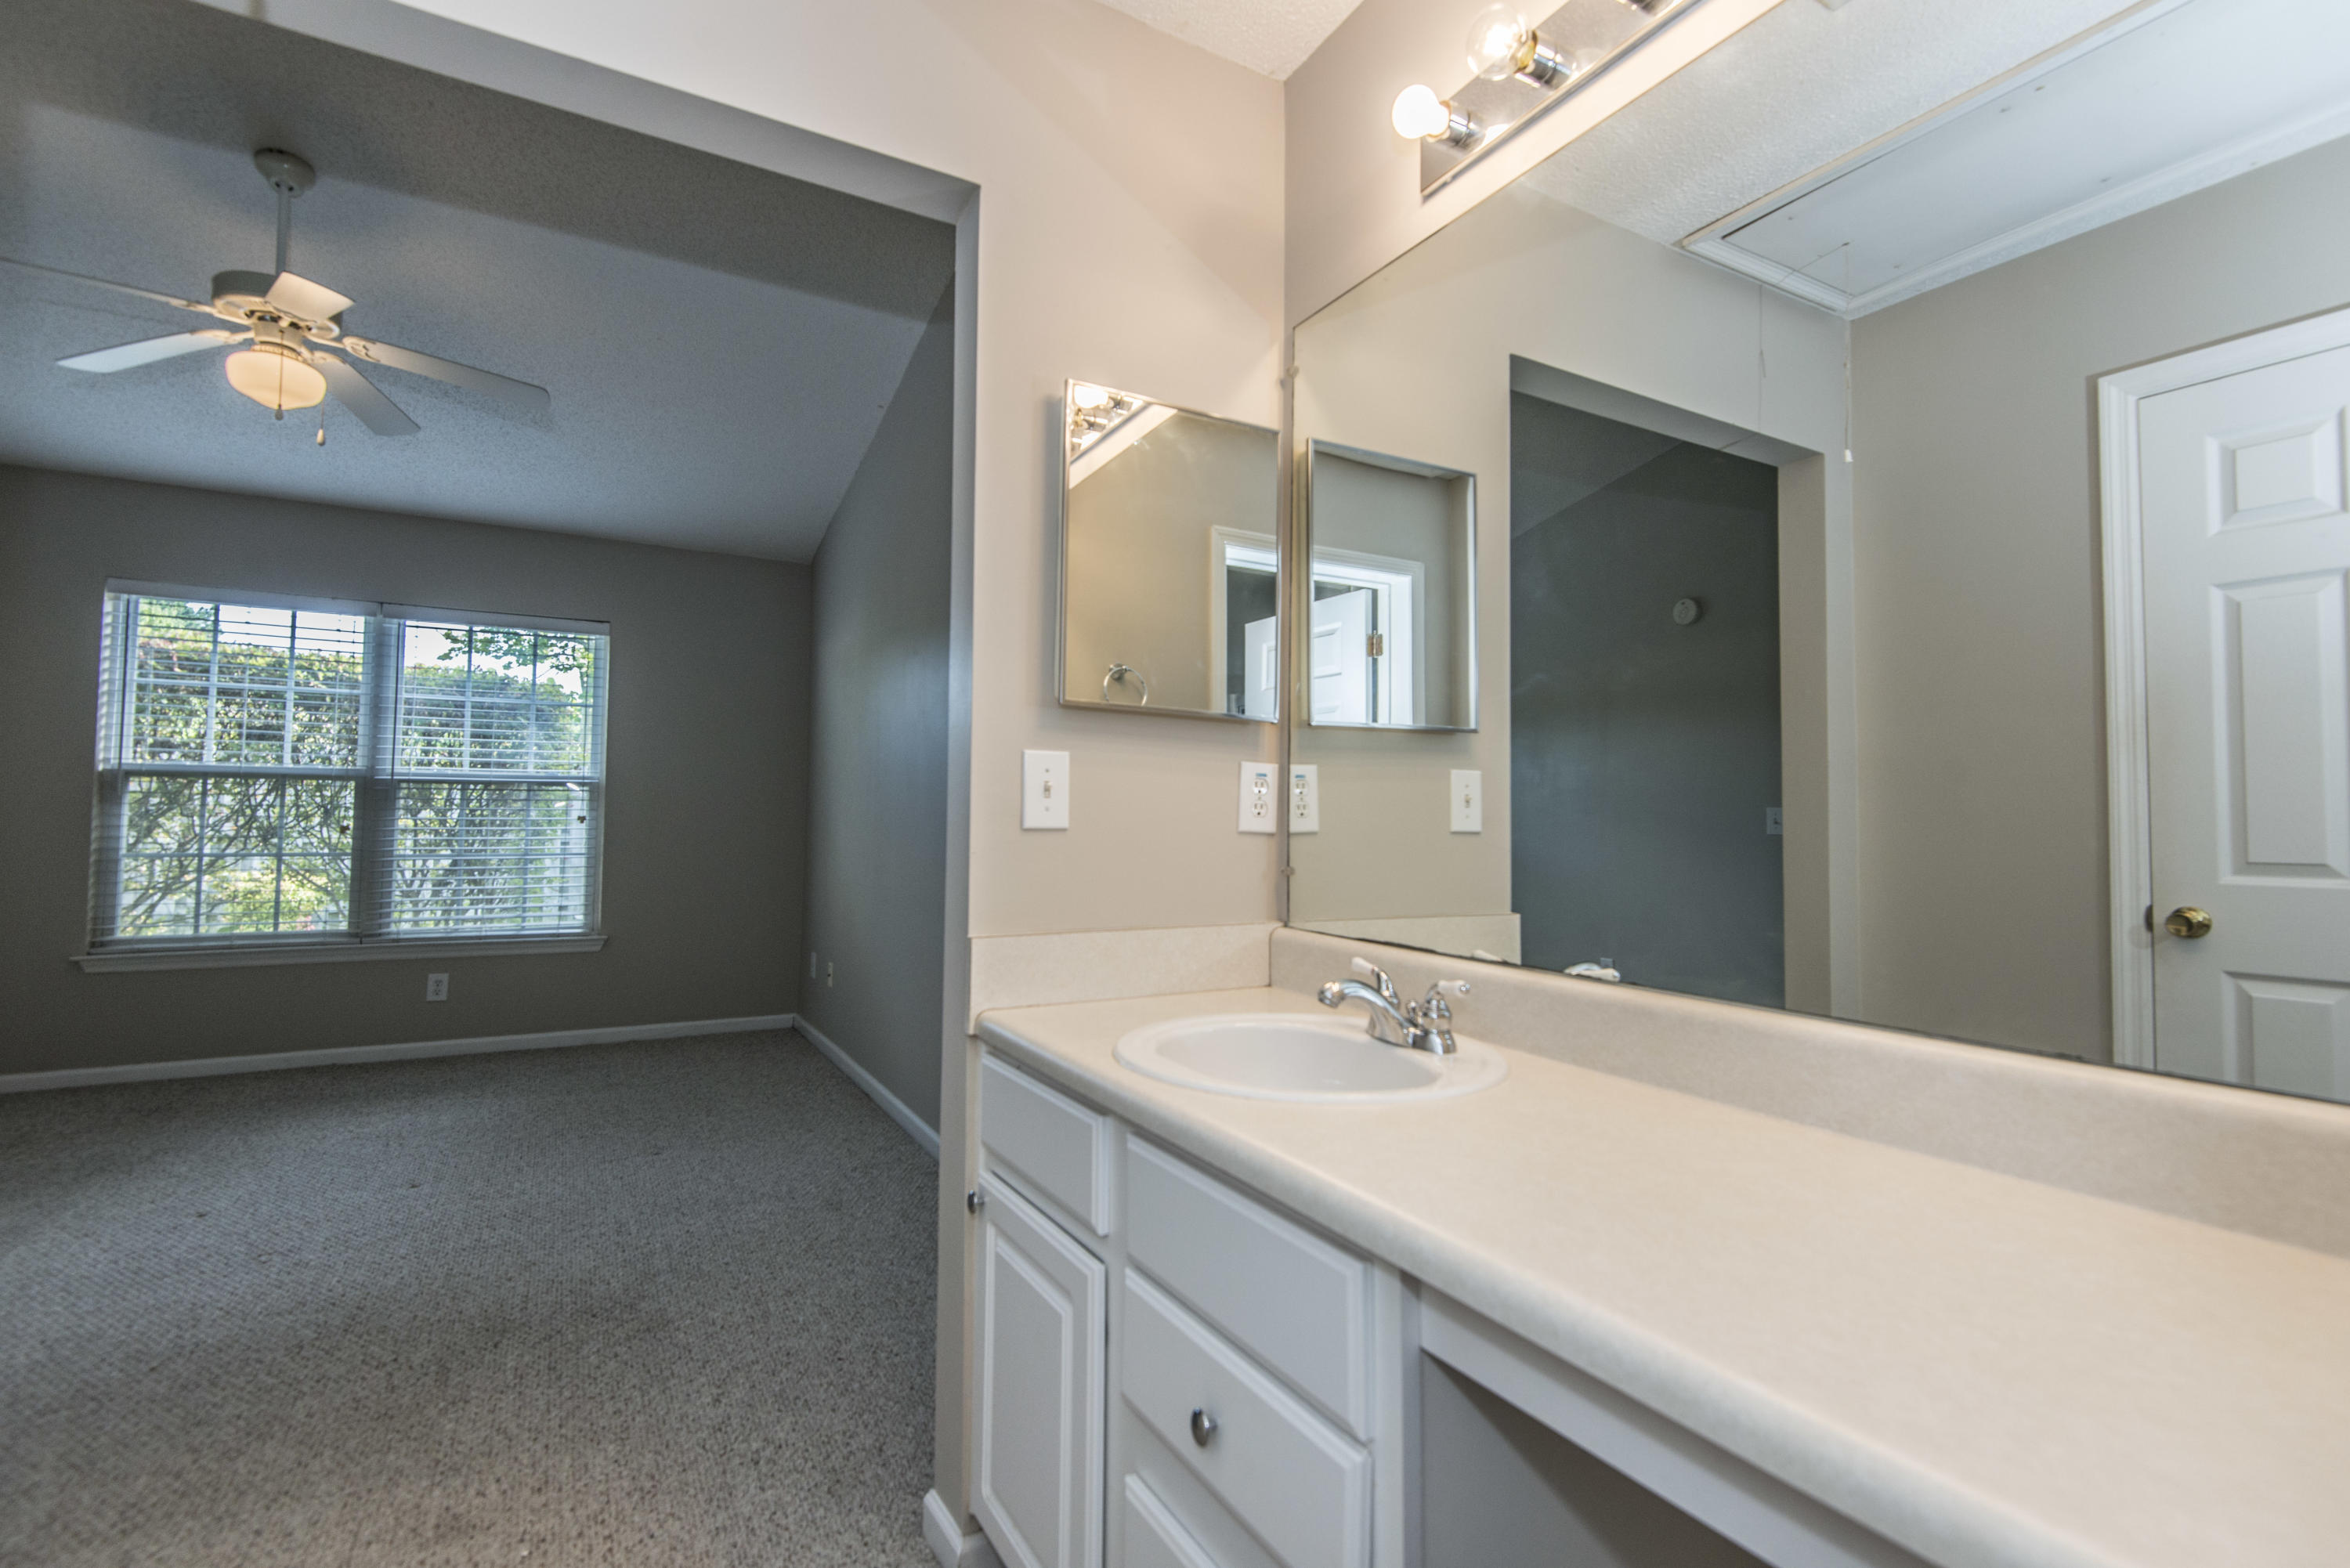 Meridian Place Homes For Sale - 1274 Apex, Charleston, SC - 8